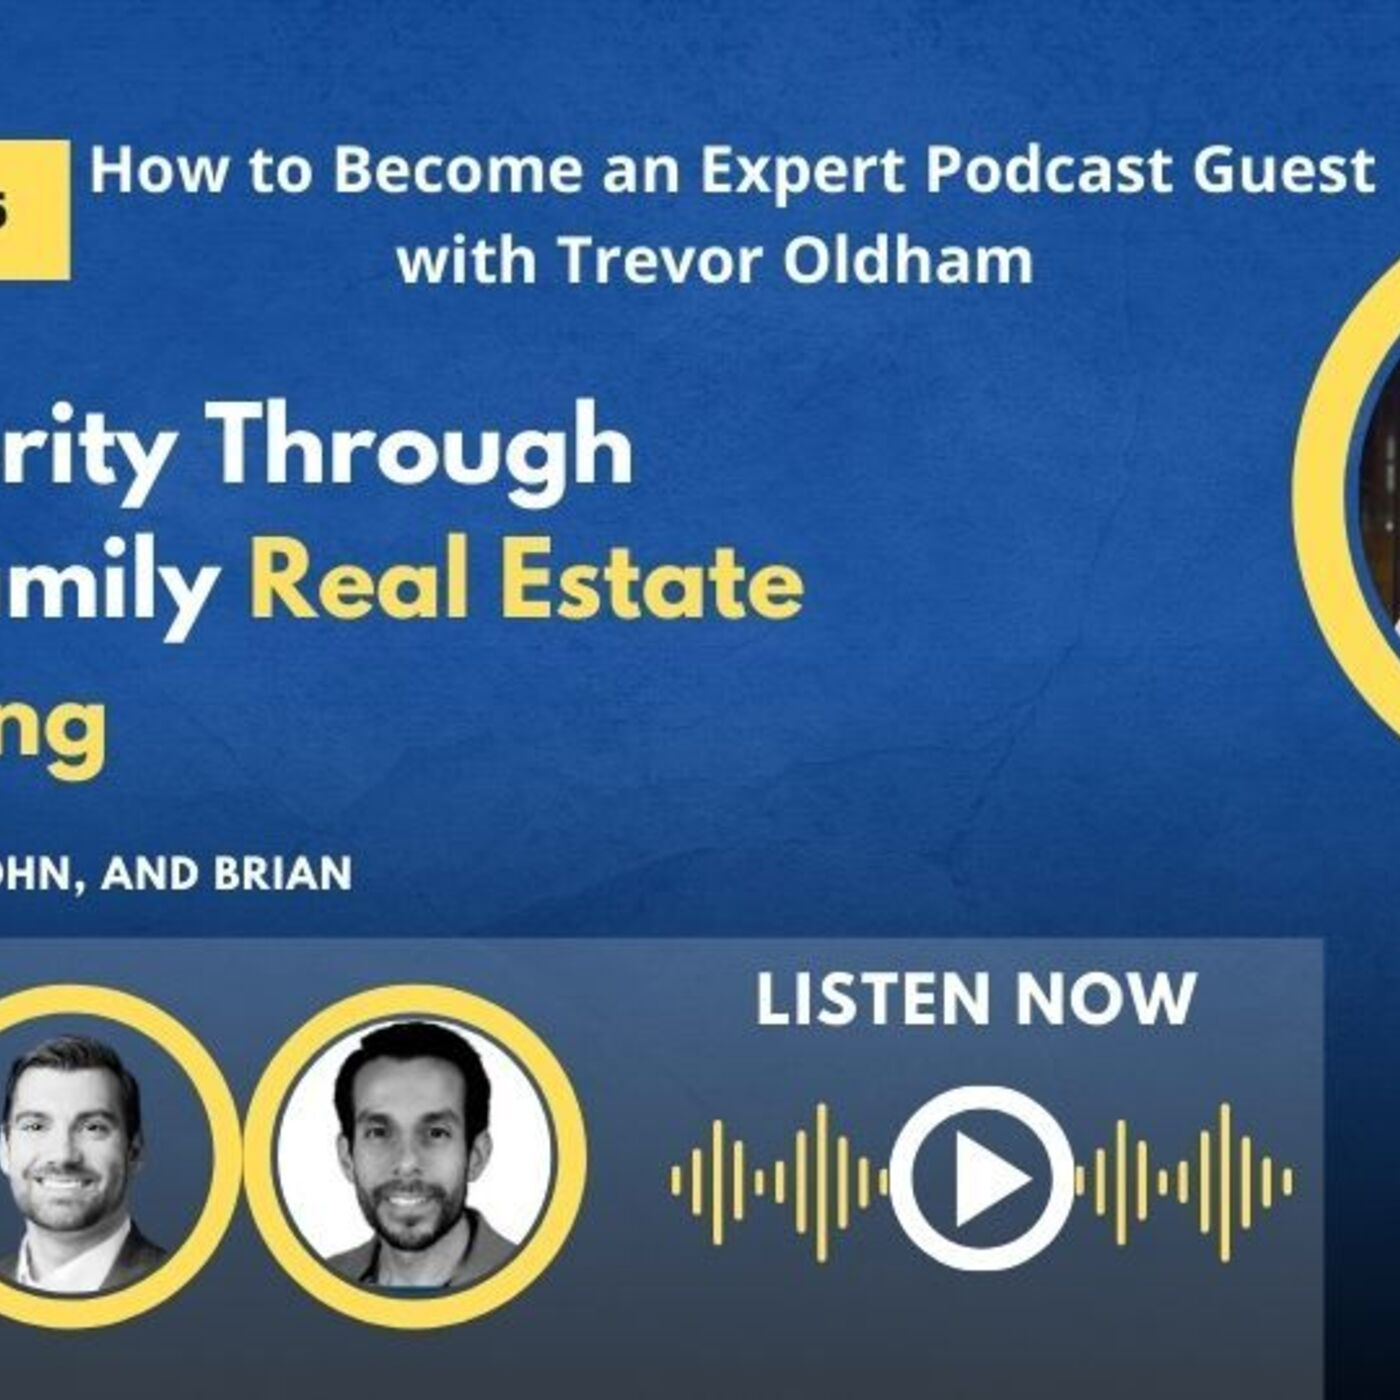 How to Become an Expert Podcast Guest with Trevor Oldham